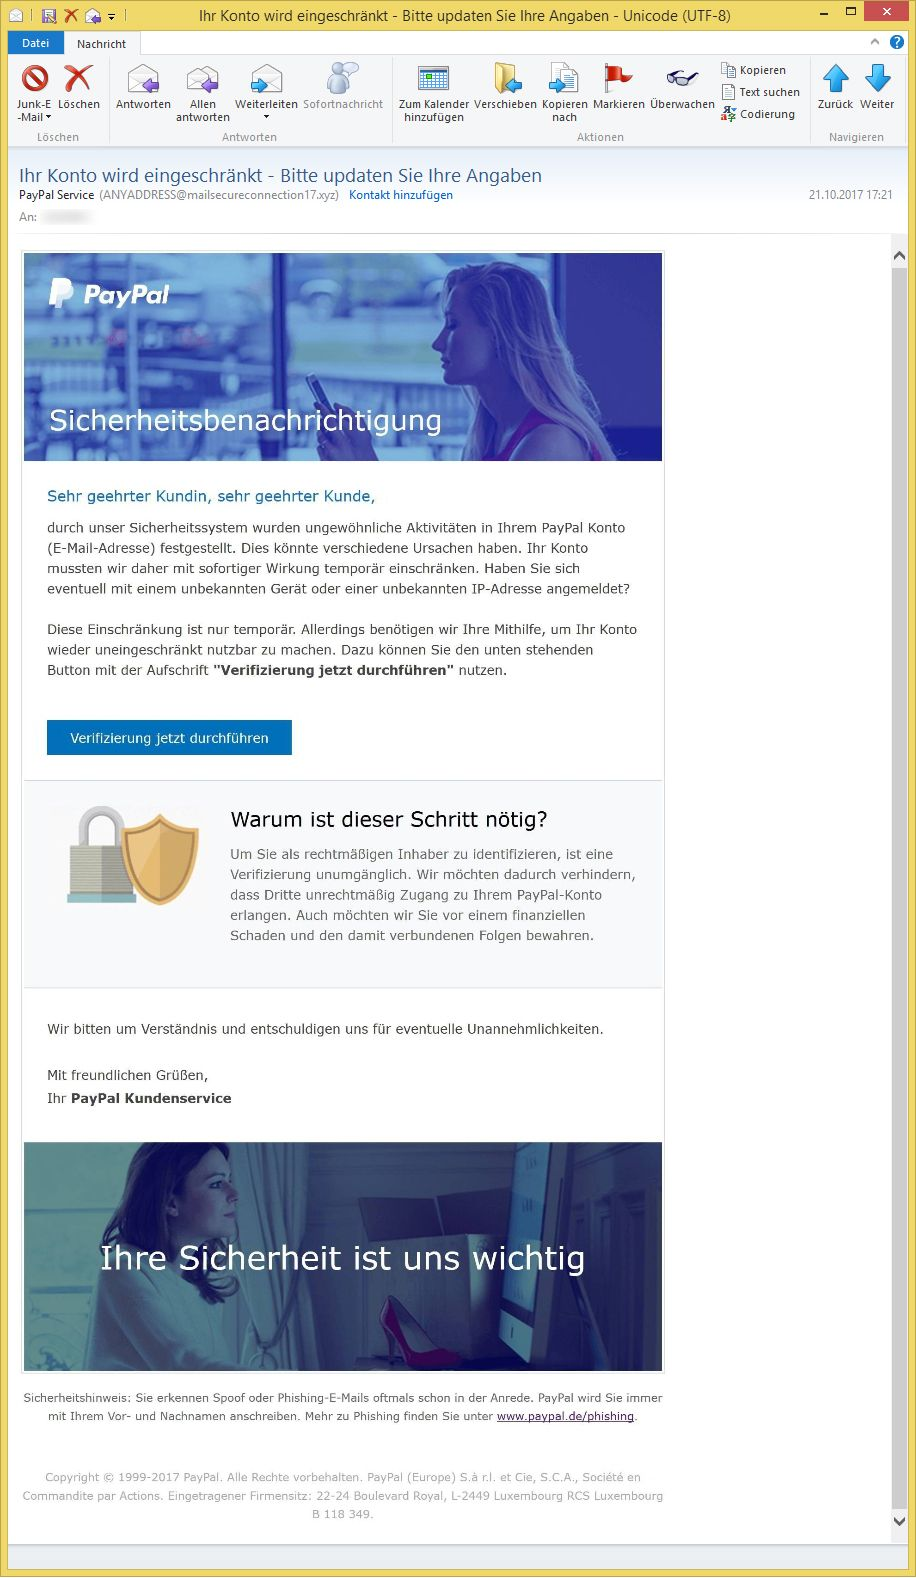 e mail adresse paypal kundenservice